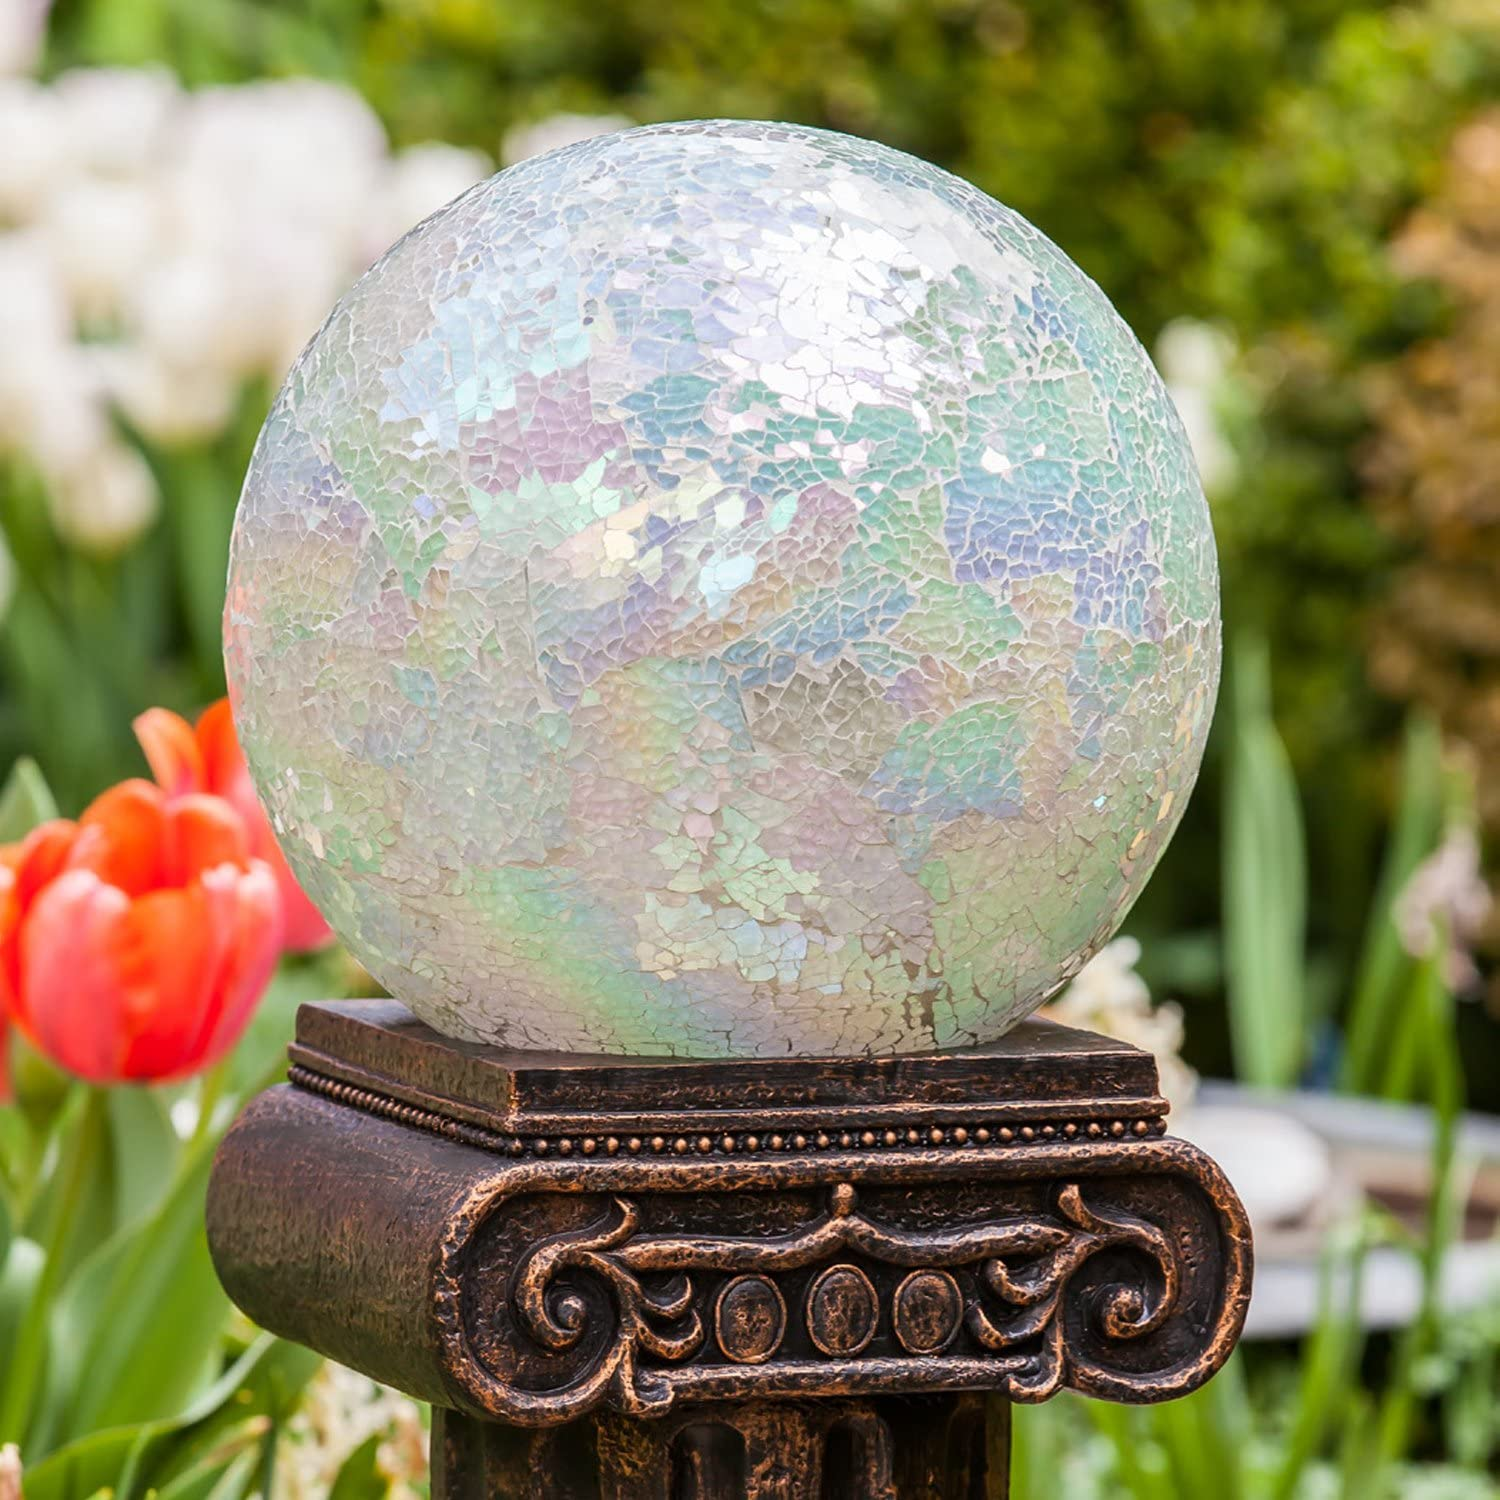 Glass Gazing Ball 10 inch Globe Colorful for OFFer Mosaic Special price for a limited time